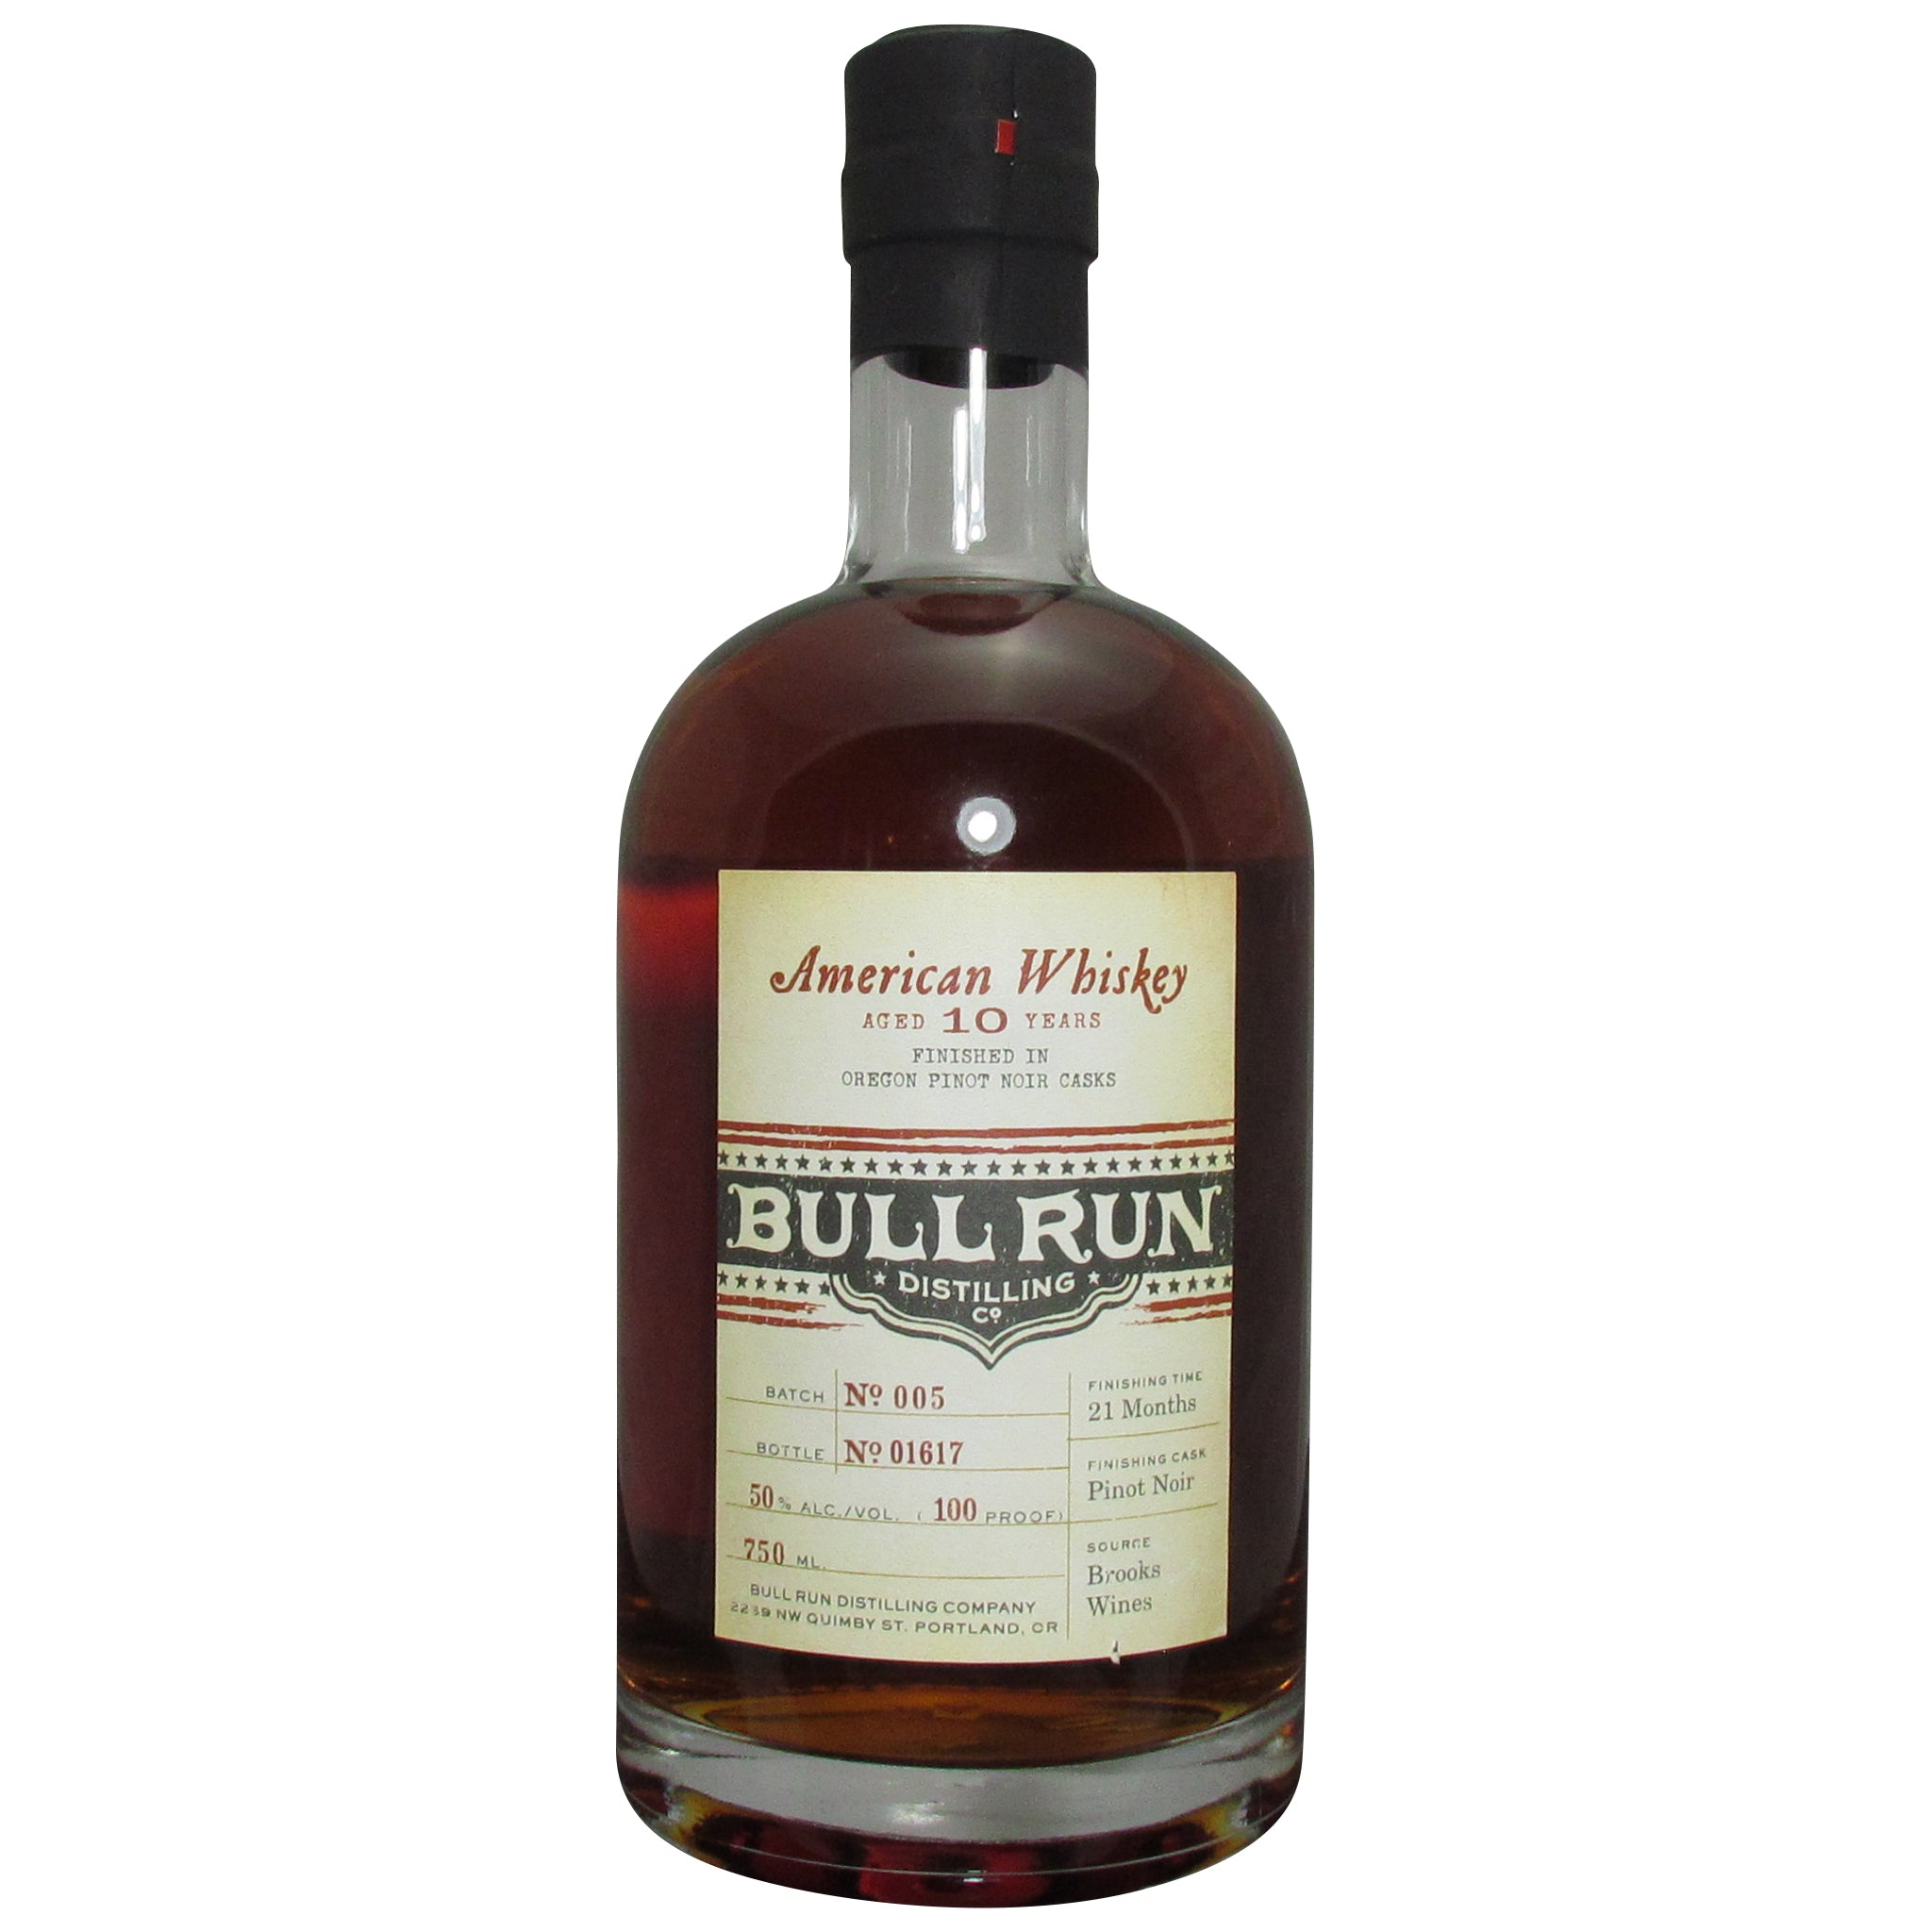 Bull Run Distilling Company Pinot Noir Finished American Whiskey 100 Proof